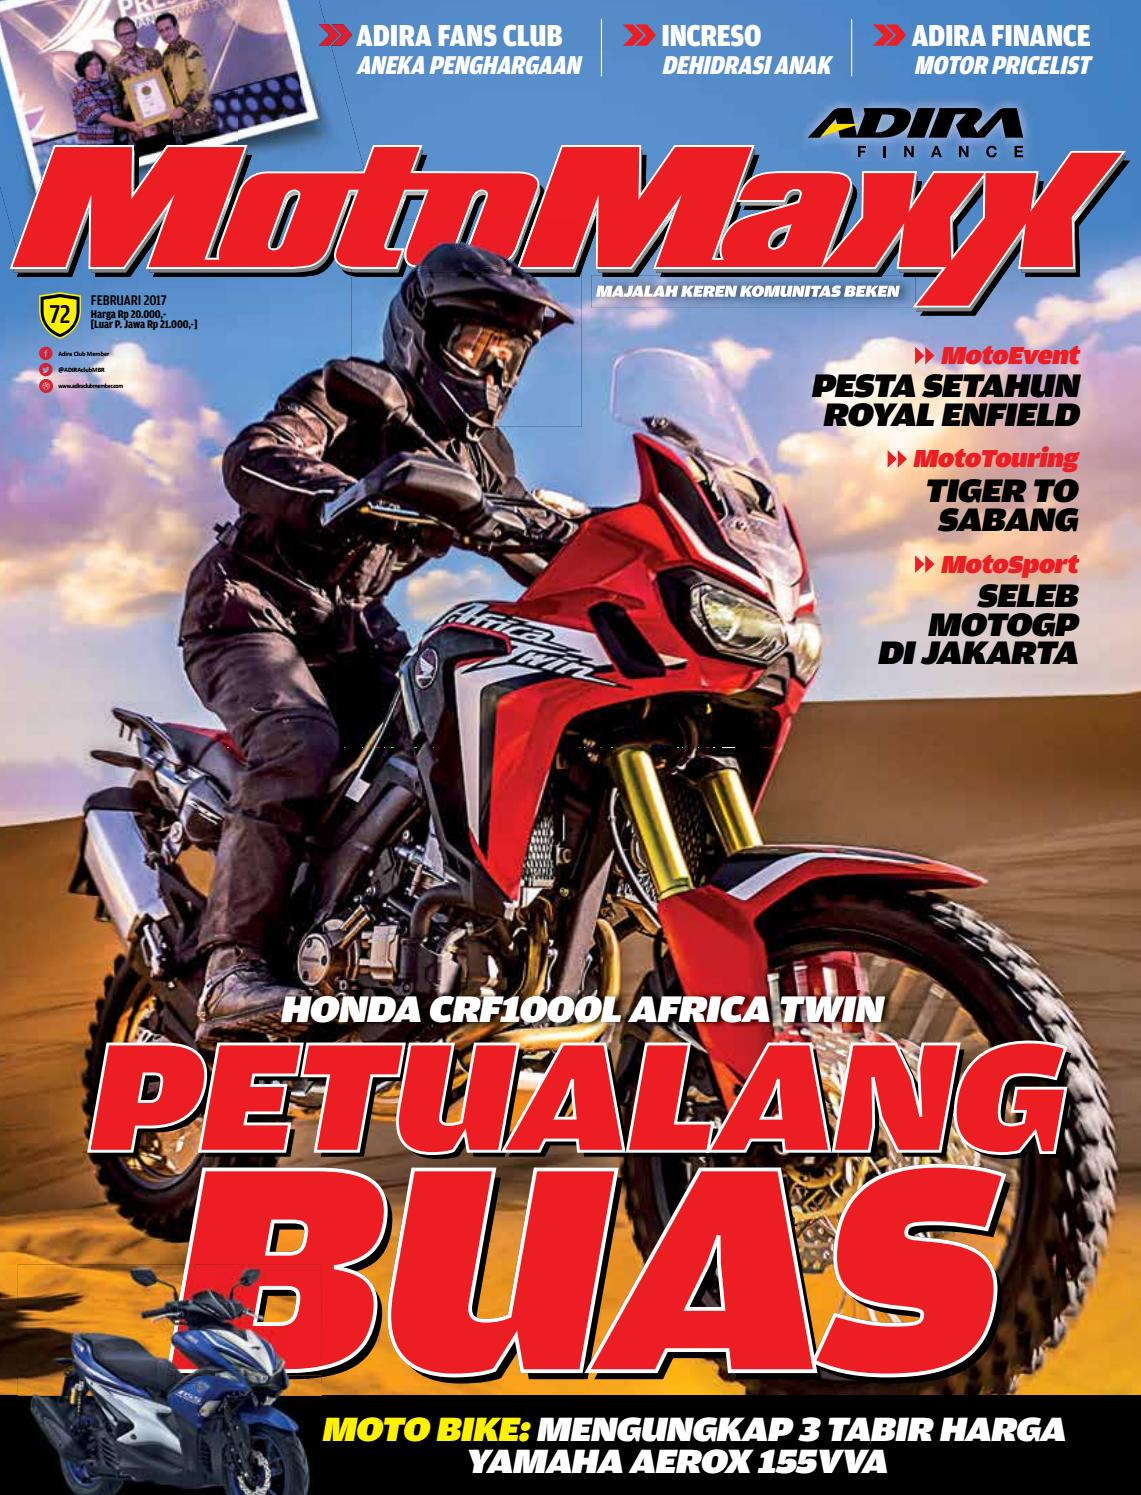 Motomaxx 02 2017 By Adira Member Issuu New Vario 110 Esp Cbs Glam Red Purbalingga